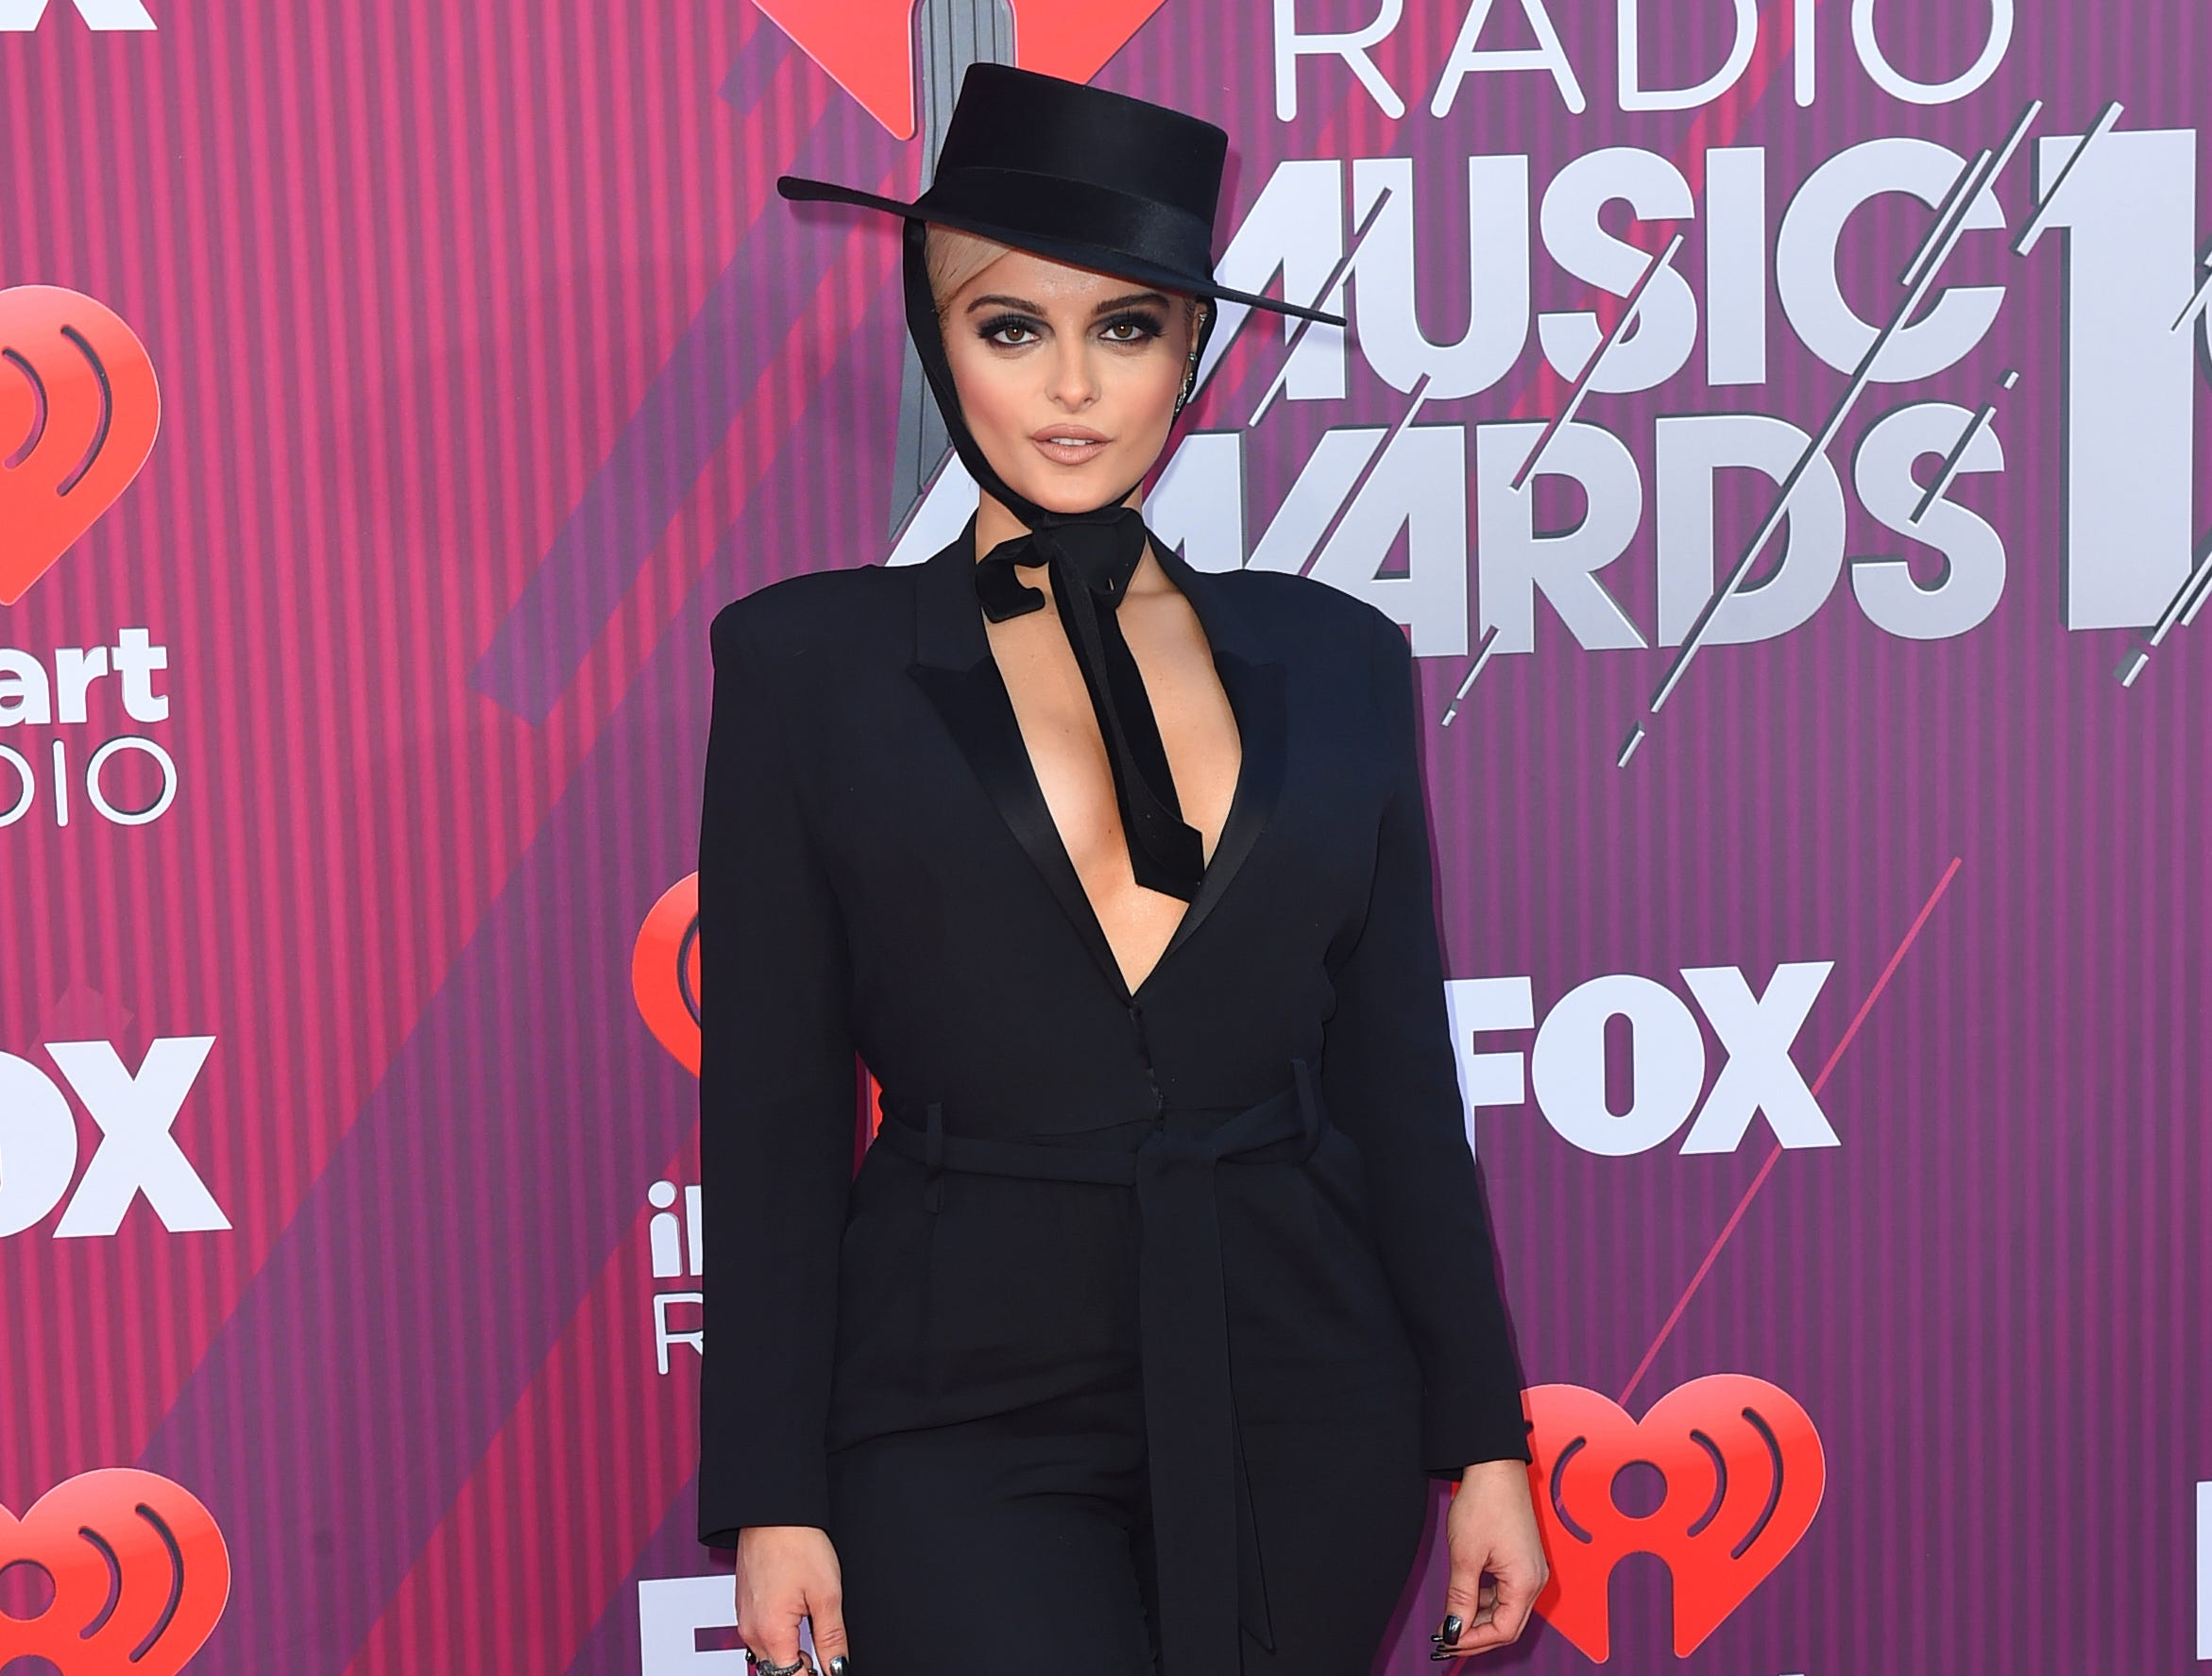 Bebe Rexha arrives at the iHeartRadio Music Awards.